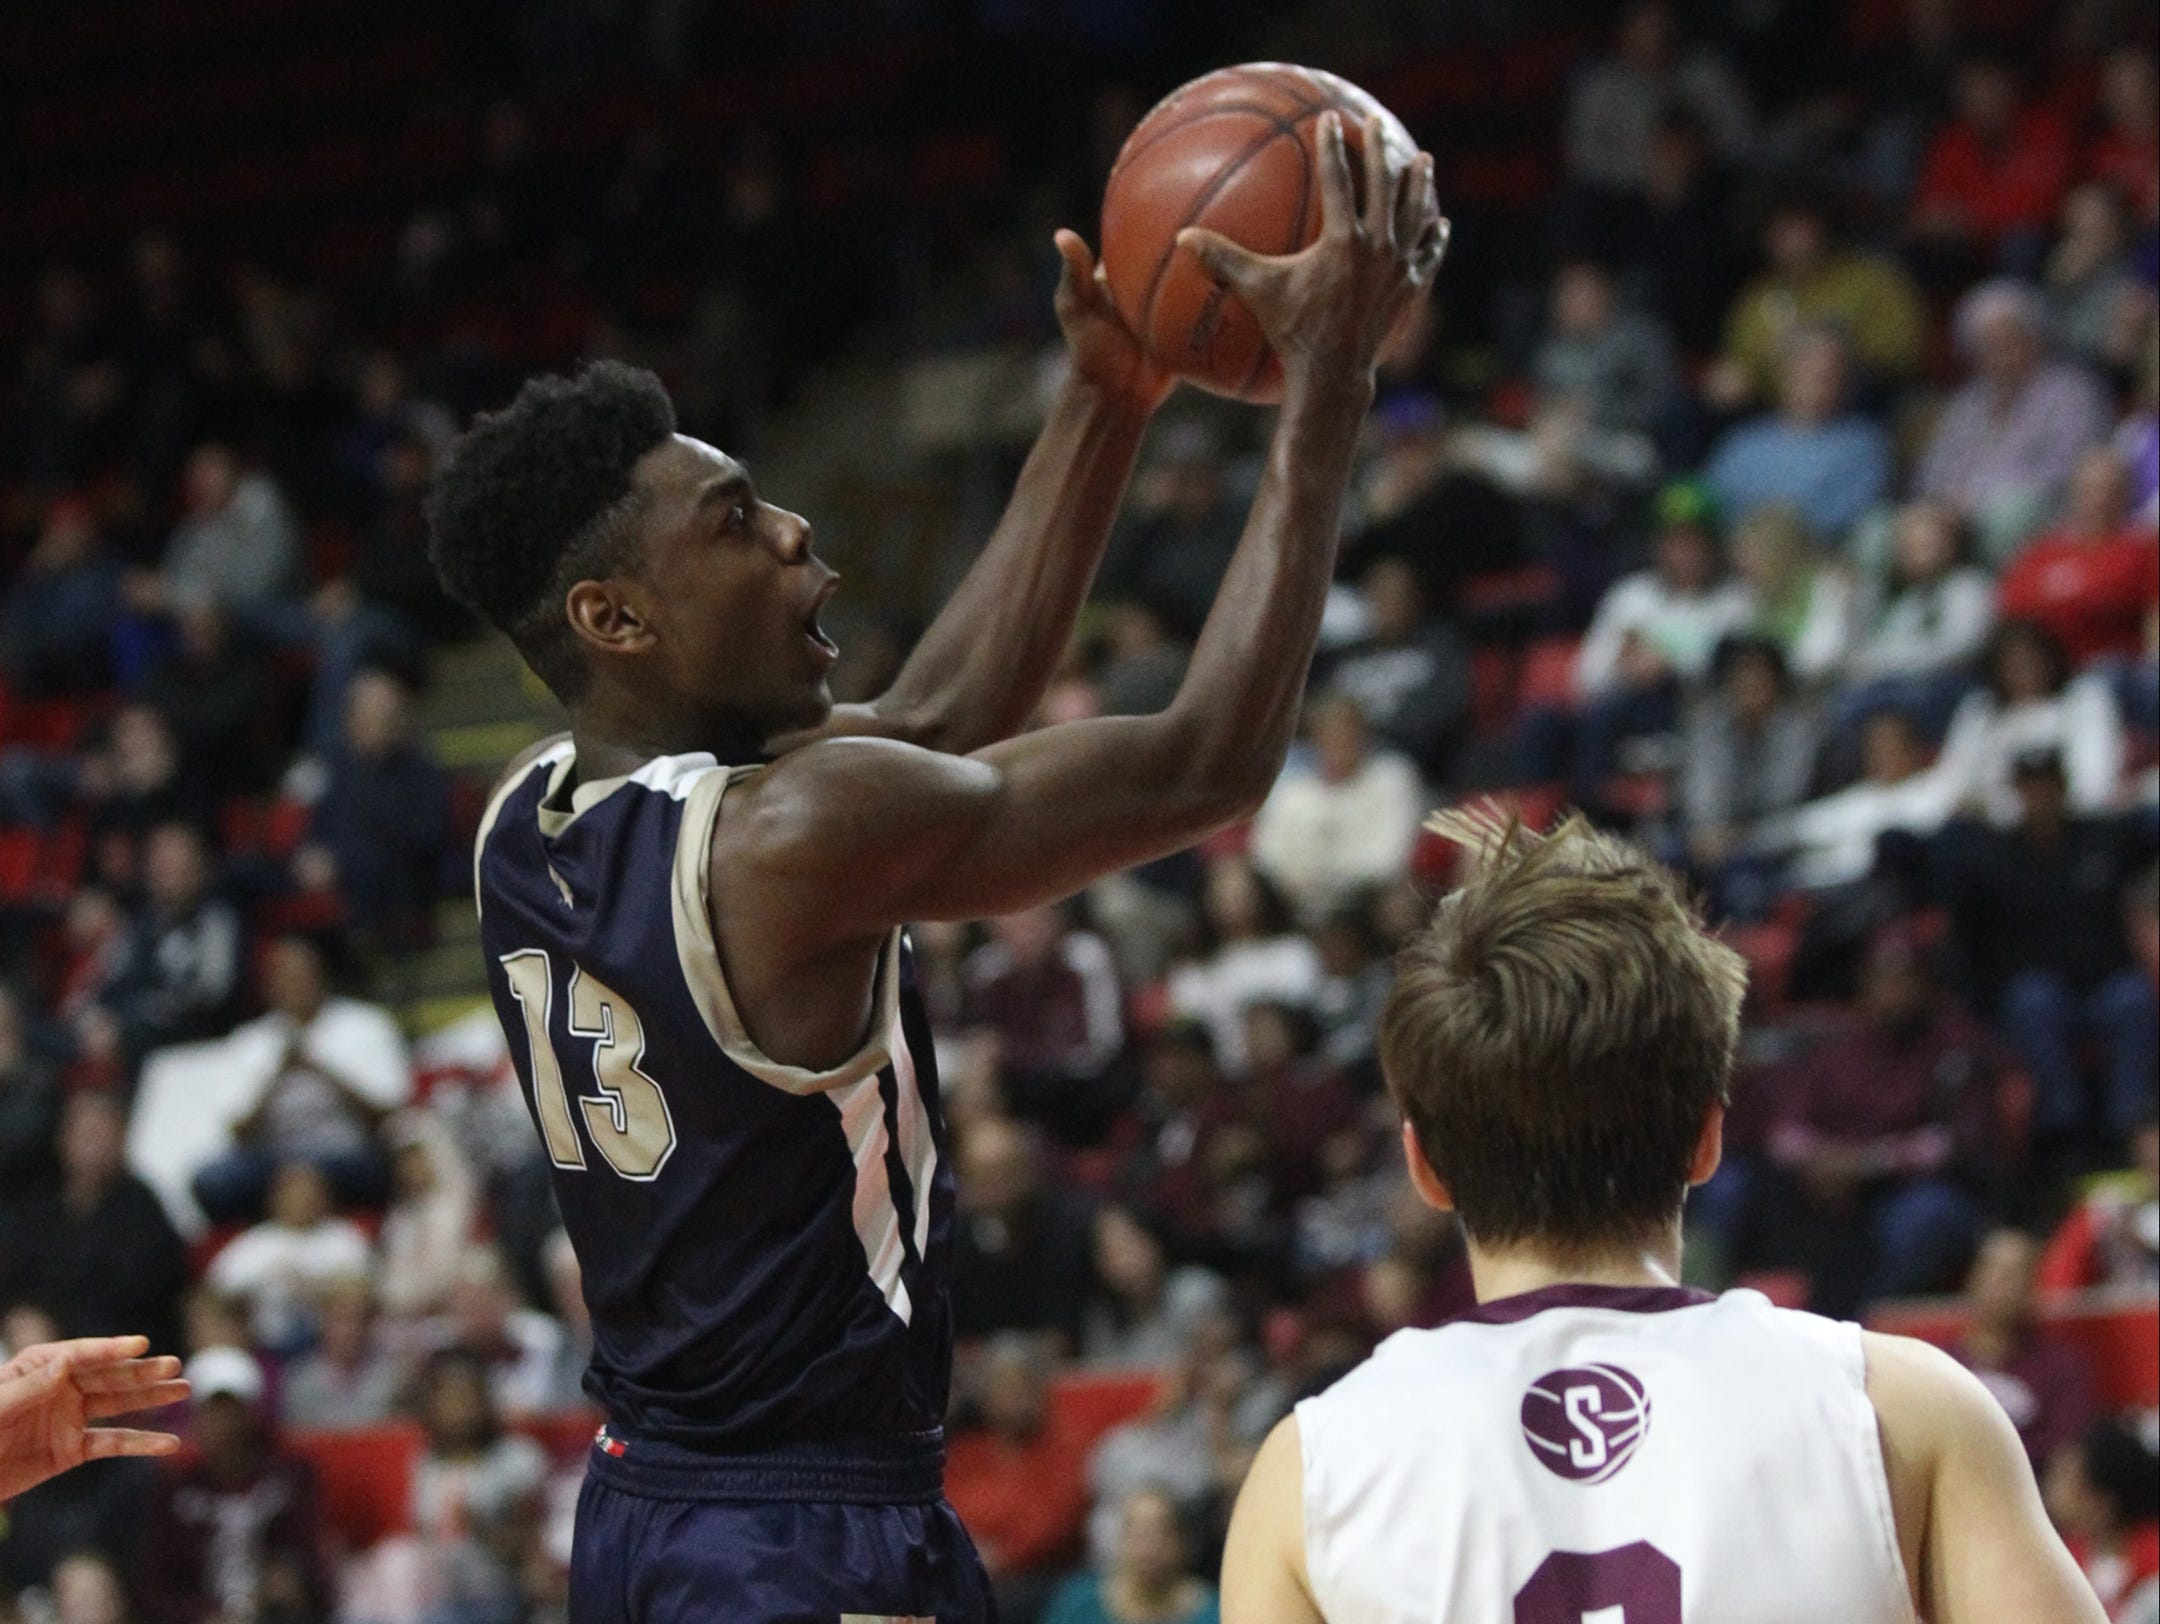 Our Lady of Lourdes's Kevin Townes (13) puts up a shot during their 70-67 win over Southampton in the NYSPHSAA boys Class A semifinal basketball game at Floyd L. Maines Veterans Memorial Arena in Binghamton on Saturday, March 18, 2017.